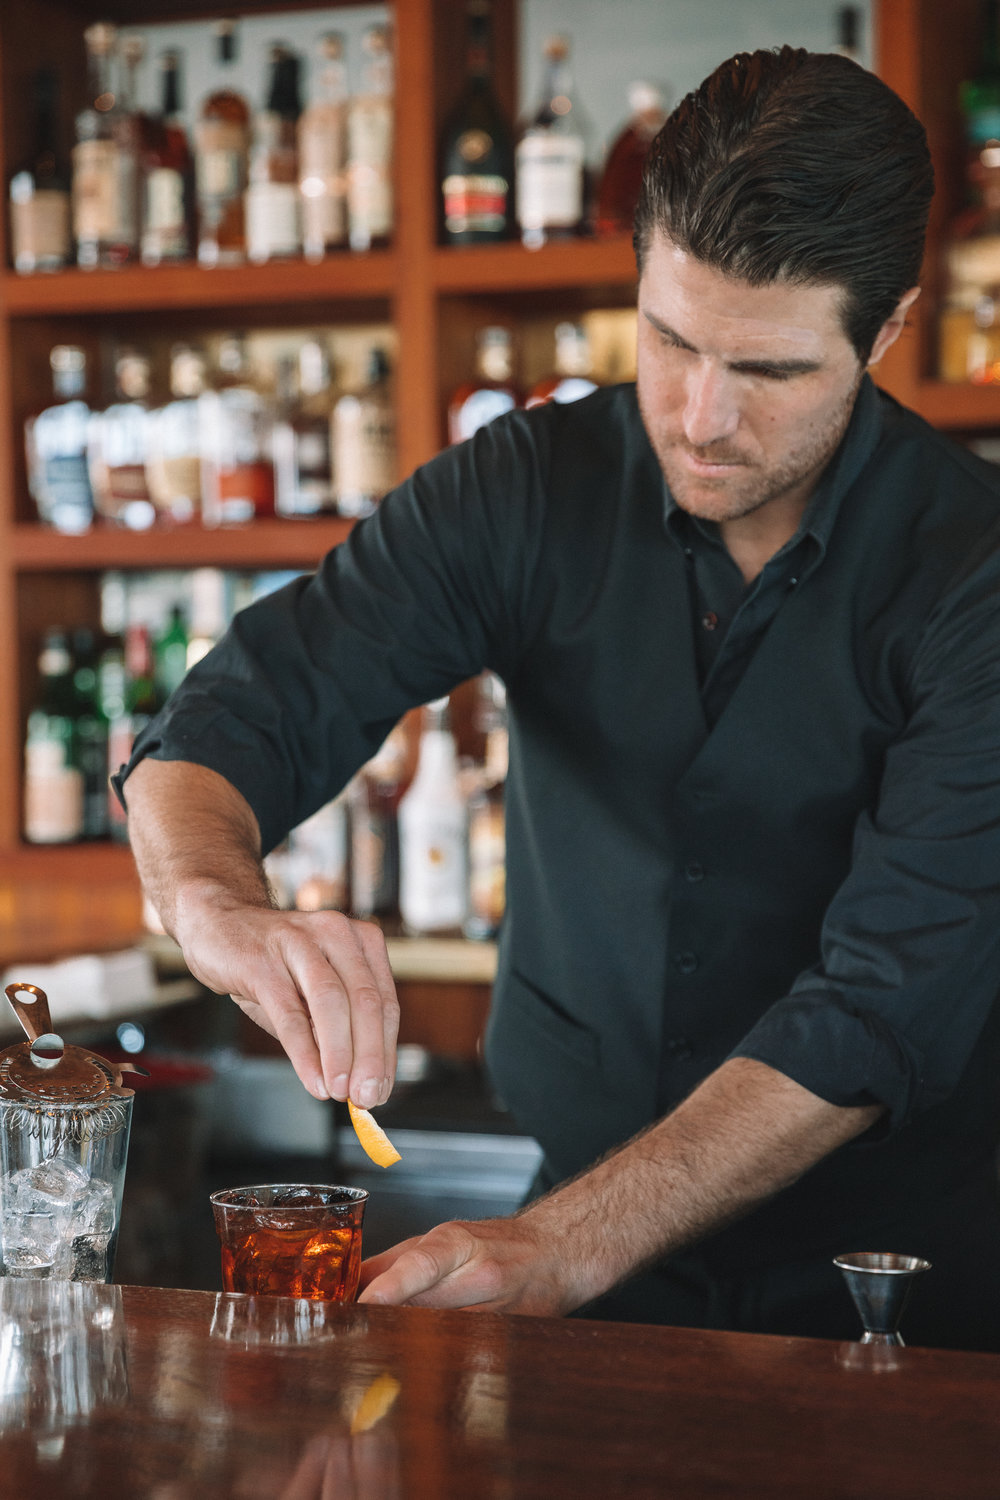 A Bartender making The Lobster Elyx Signature Cocktail